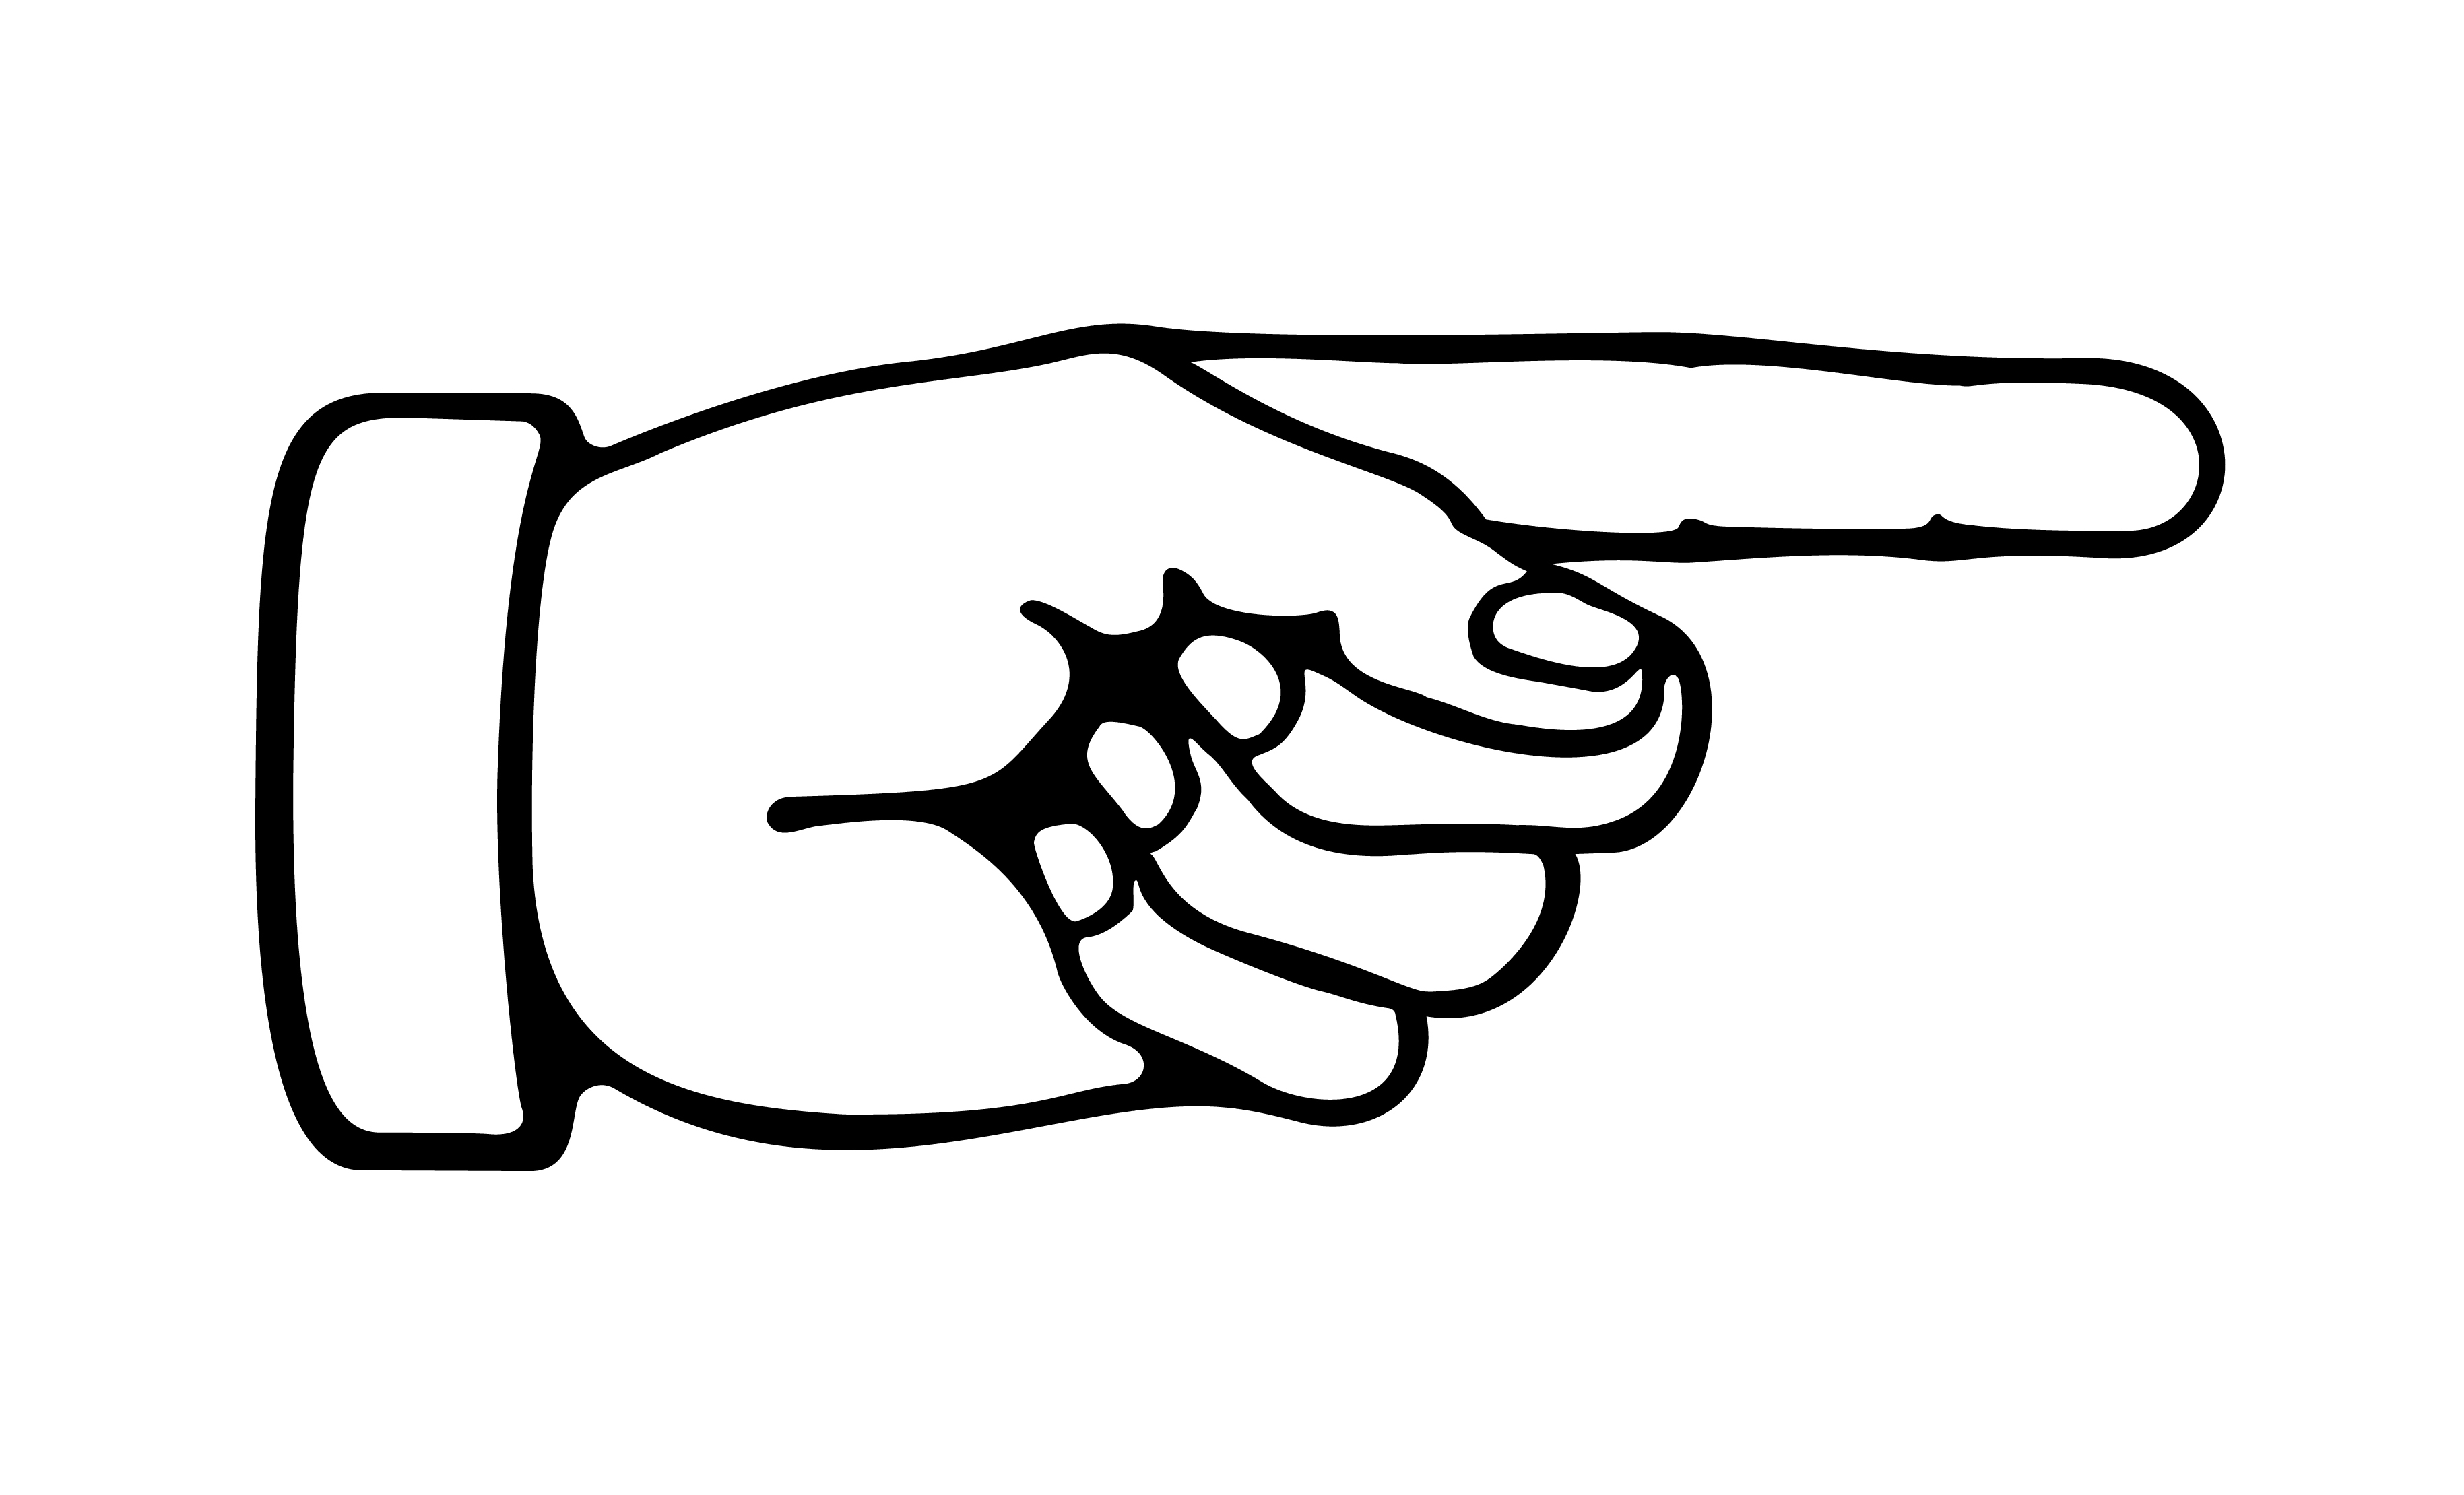 finger-point-clipart-20.jpg